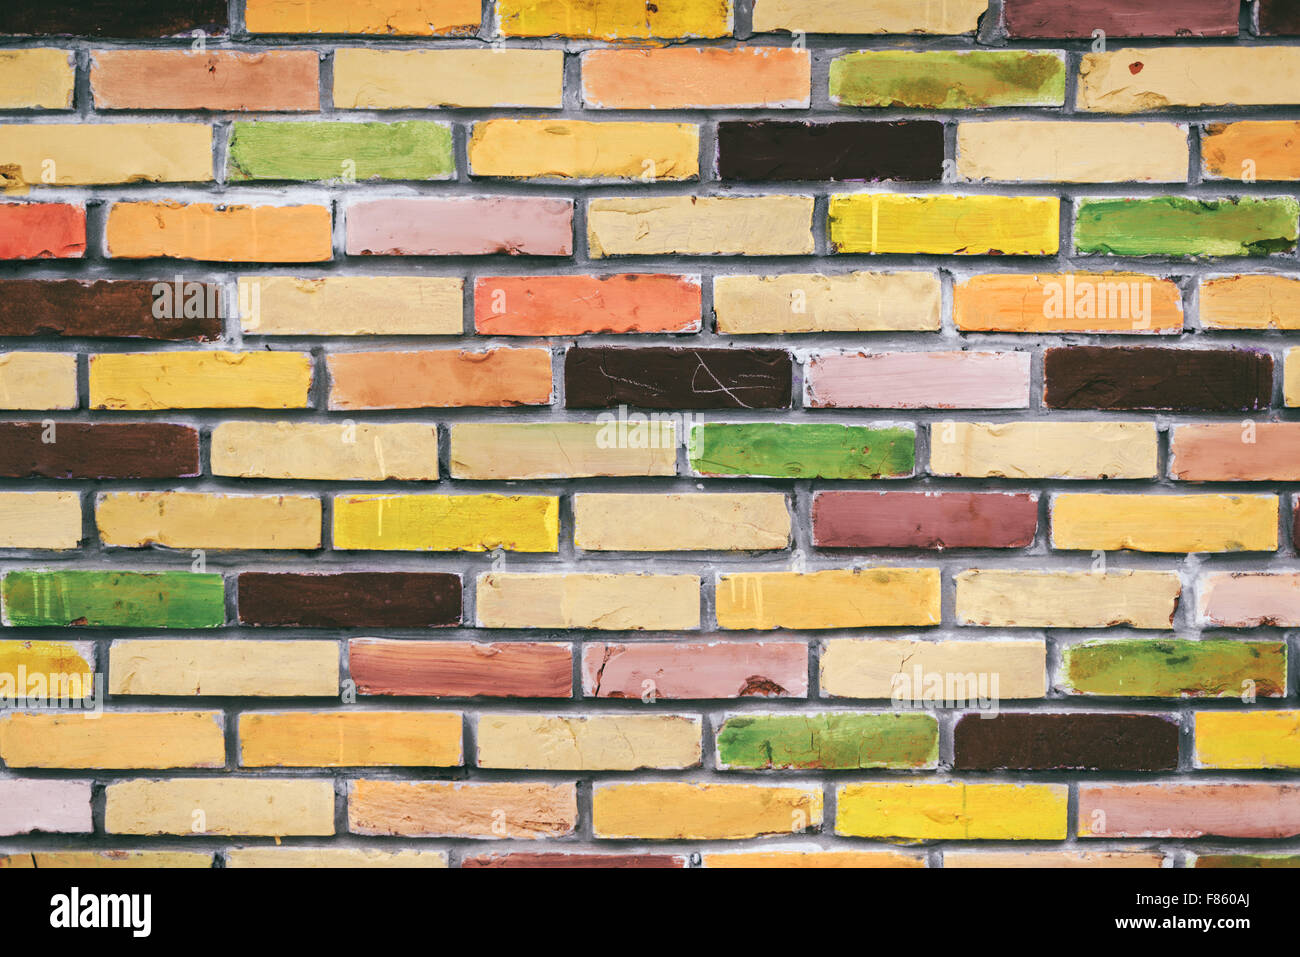 Colorful Brick Wall Texture Stock Photos & Colorful Brick Wall ...